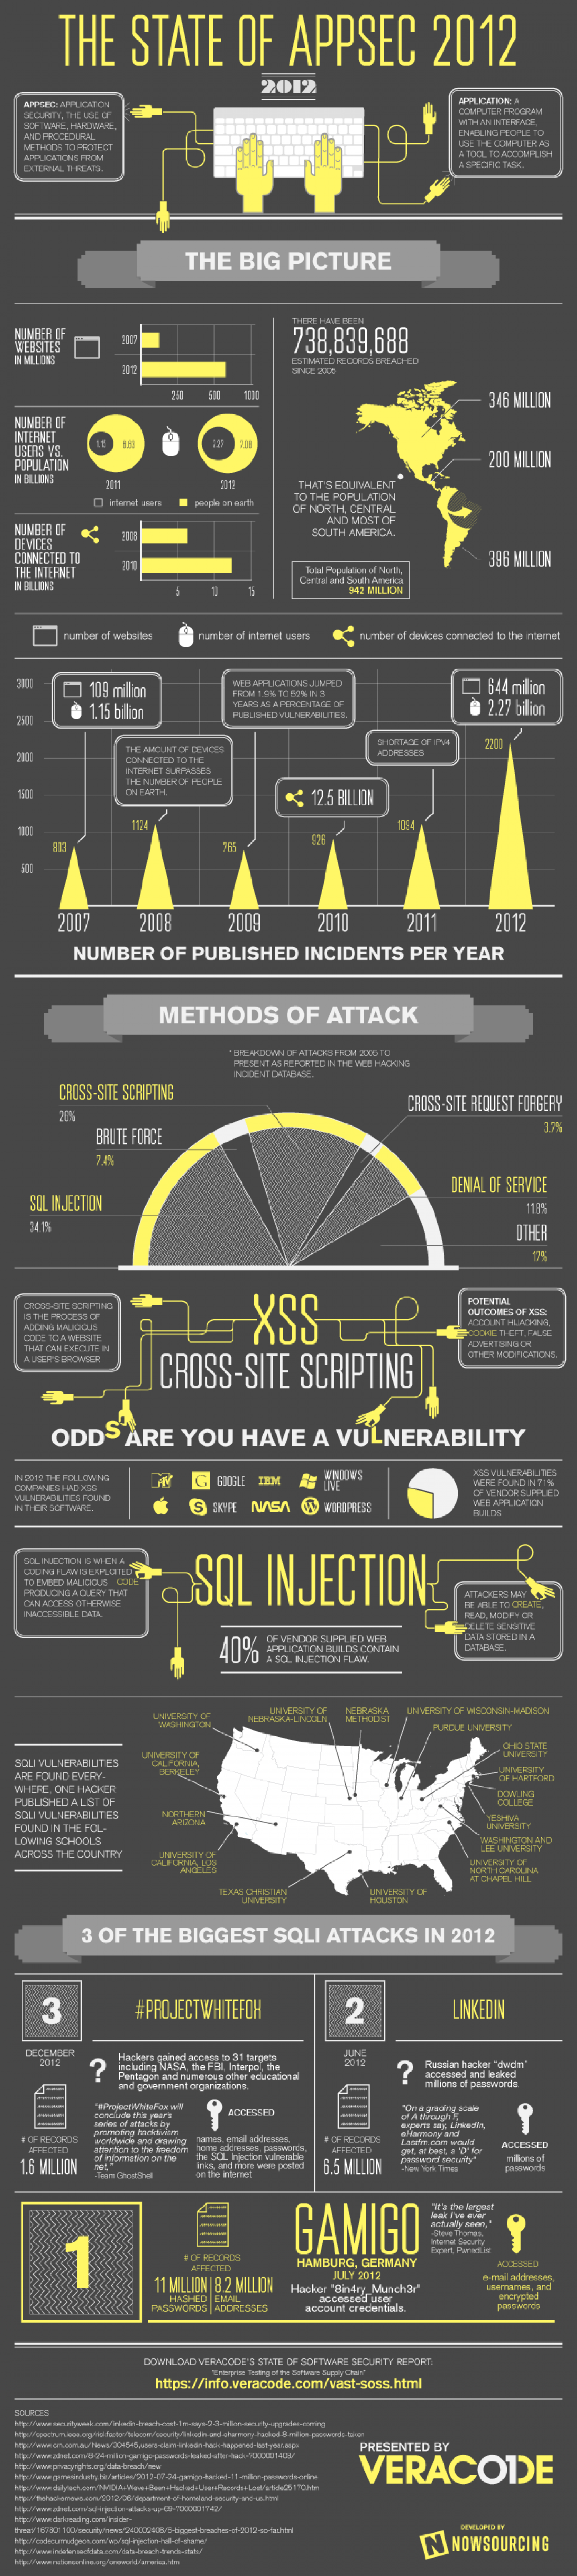 The State of Appsec 2012 Infographic